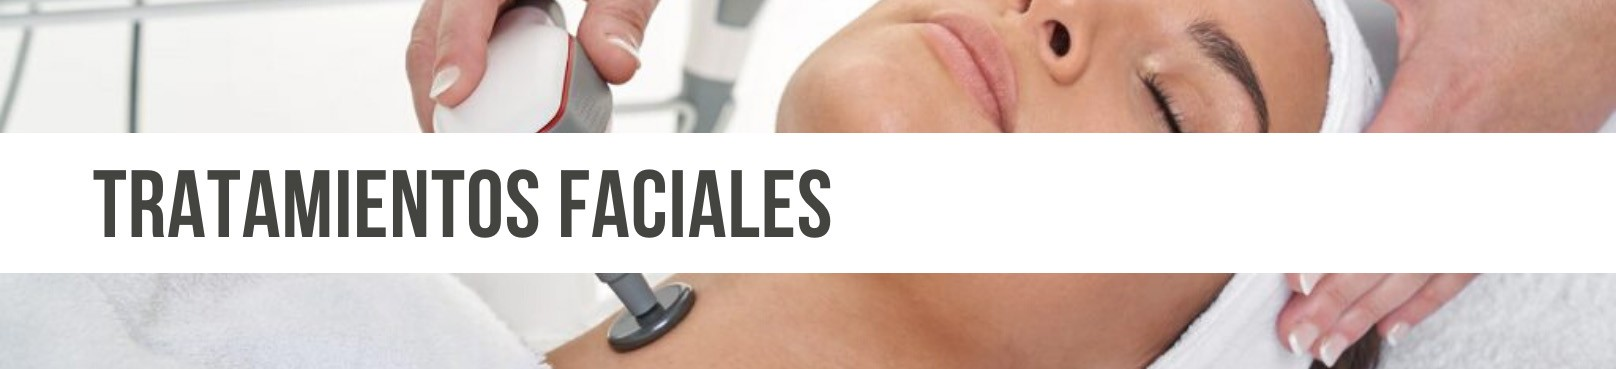 tratamientos-faciales-farmacia-mercedes